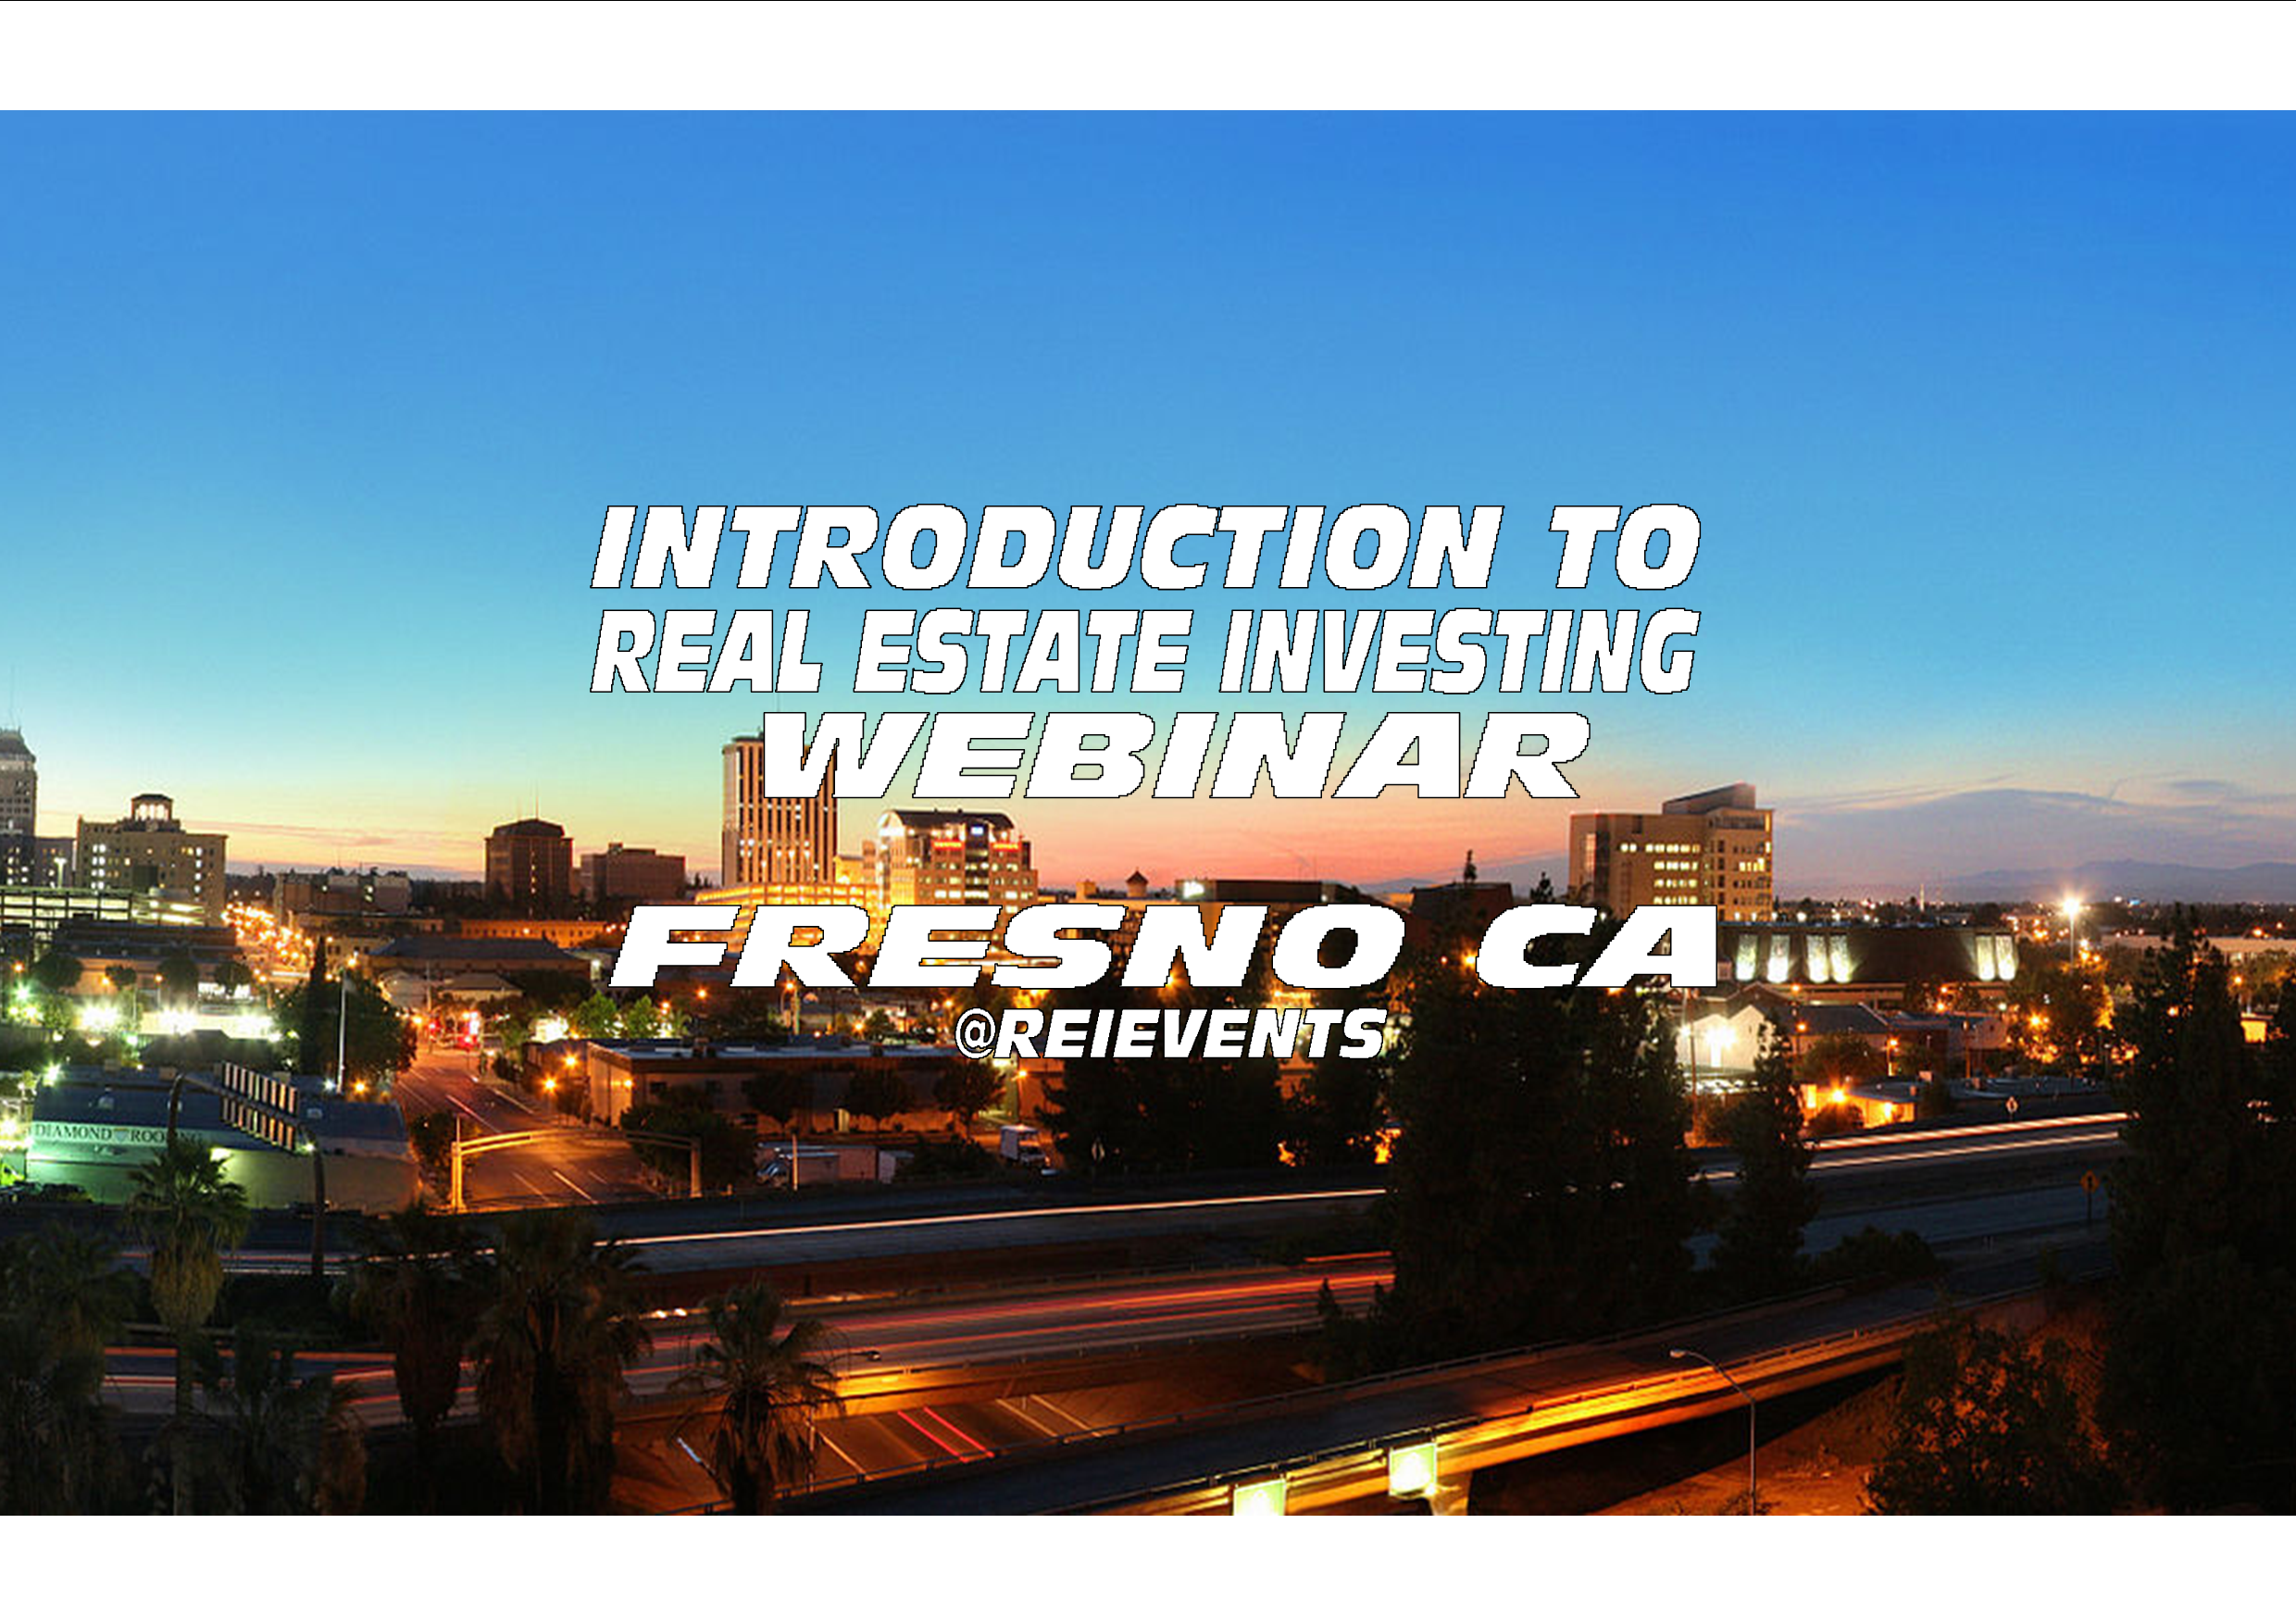 FRESNO, CA INTRODUCTION TO REAL ESTATE INVESTING - WEBINAR